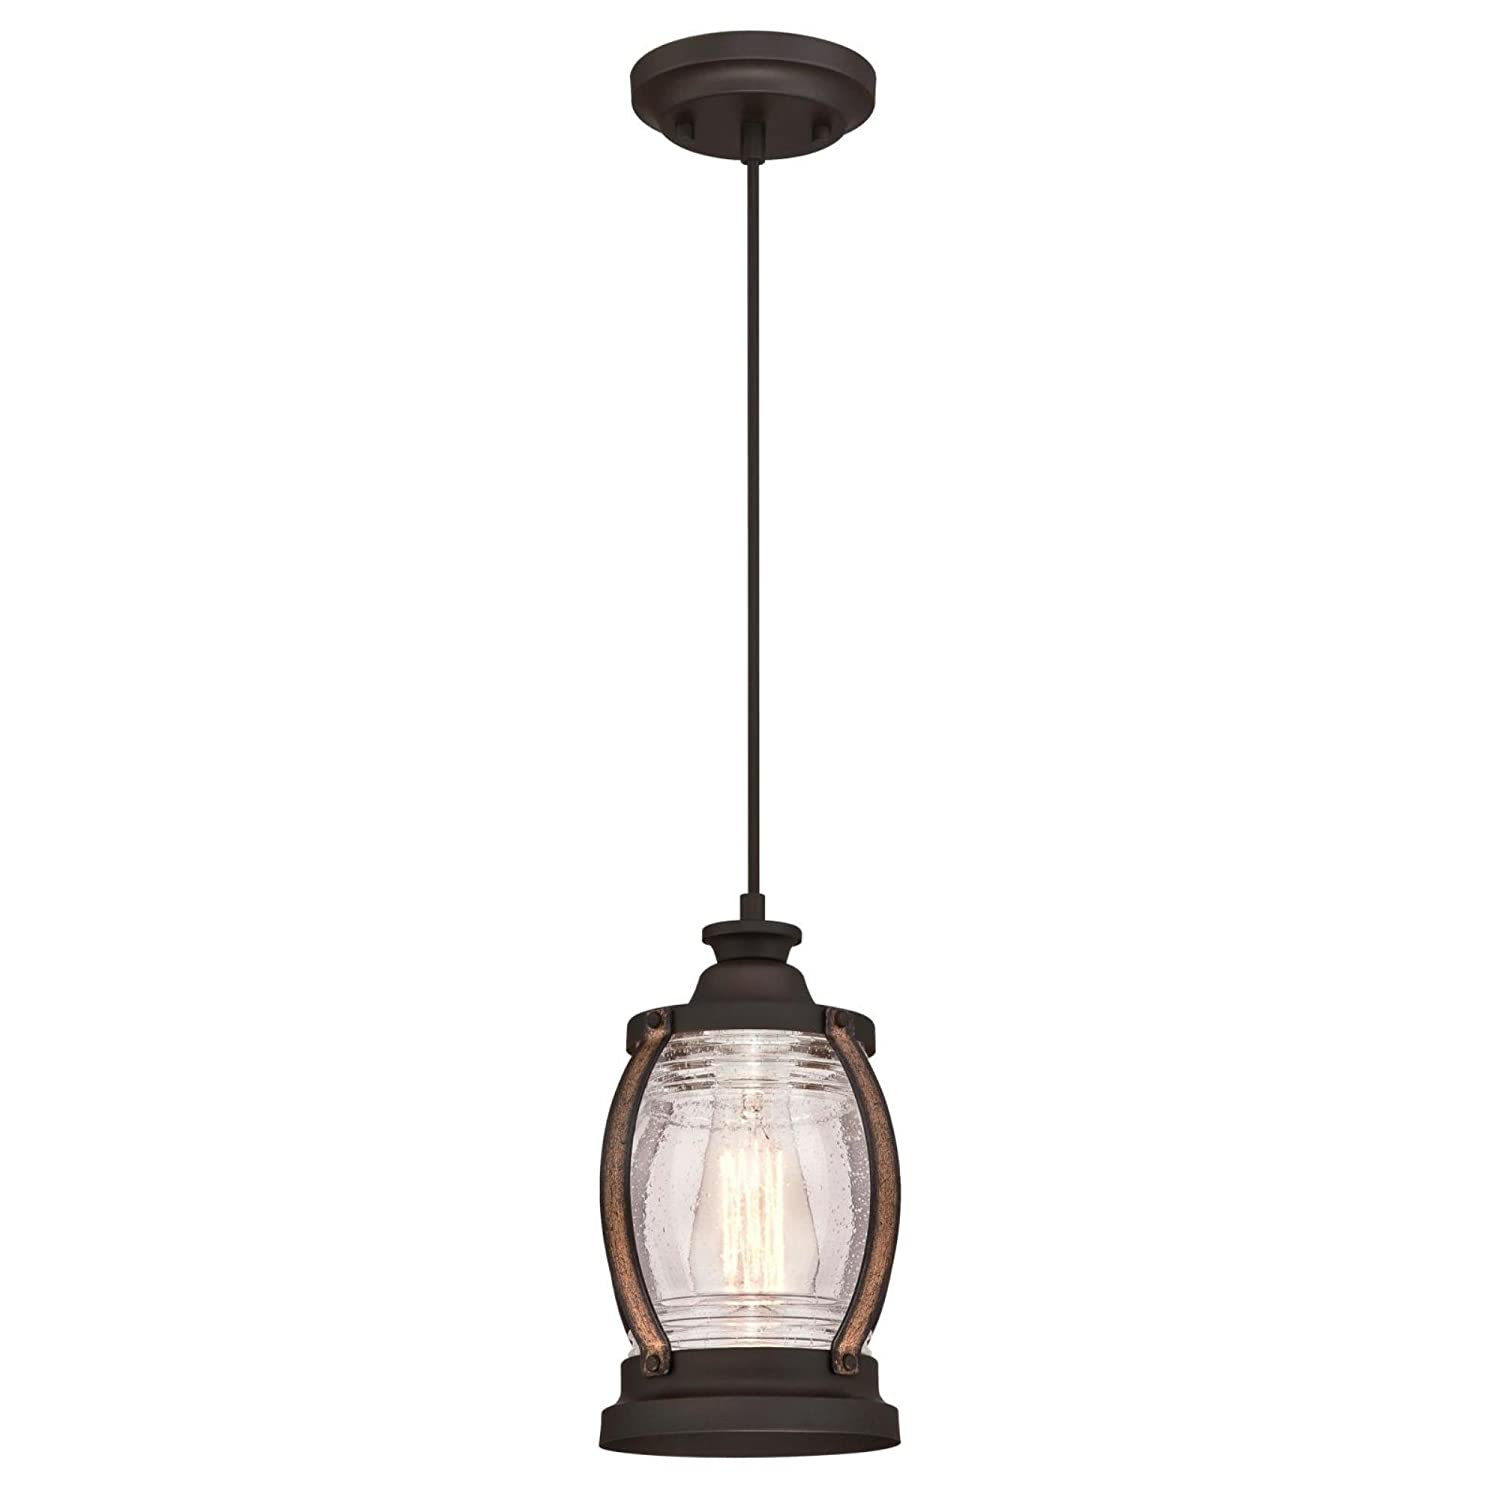 Westinghouse Lighting 6361700 Canyon One-Light Mini, Oil Rubbed Bronze Finish with Barnwood Accents and Clear Seeded Glass Indoor Pendant